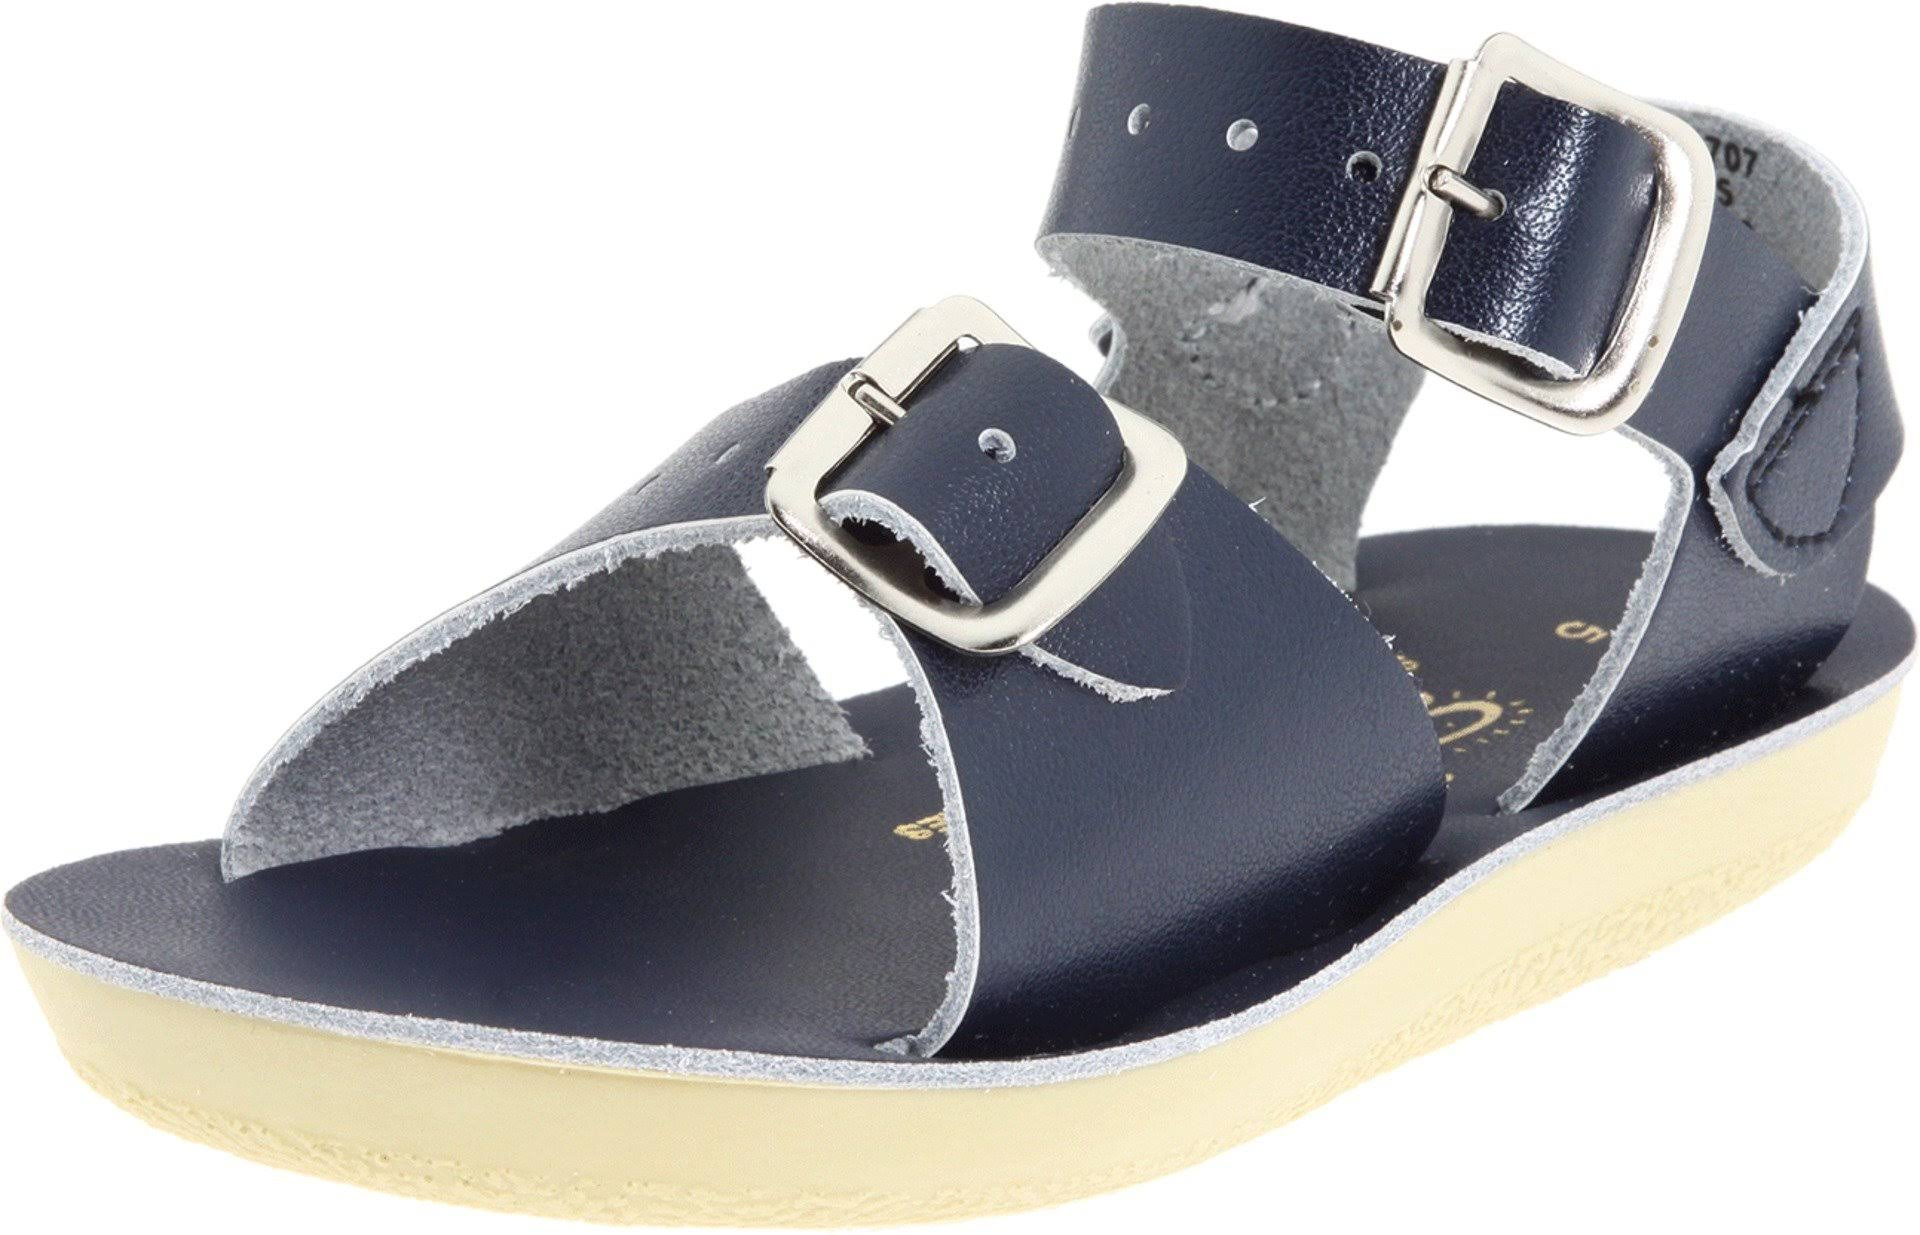 Hoy Shoes Salt Water Surfer Sandals - Blue, 9 US Youth